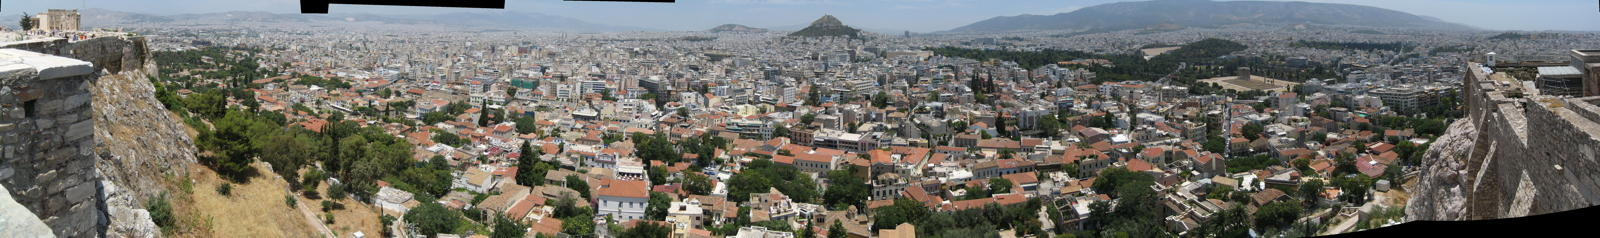 Panorama view of Athens taken from the Akropolis